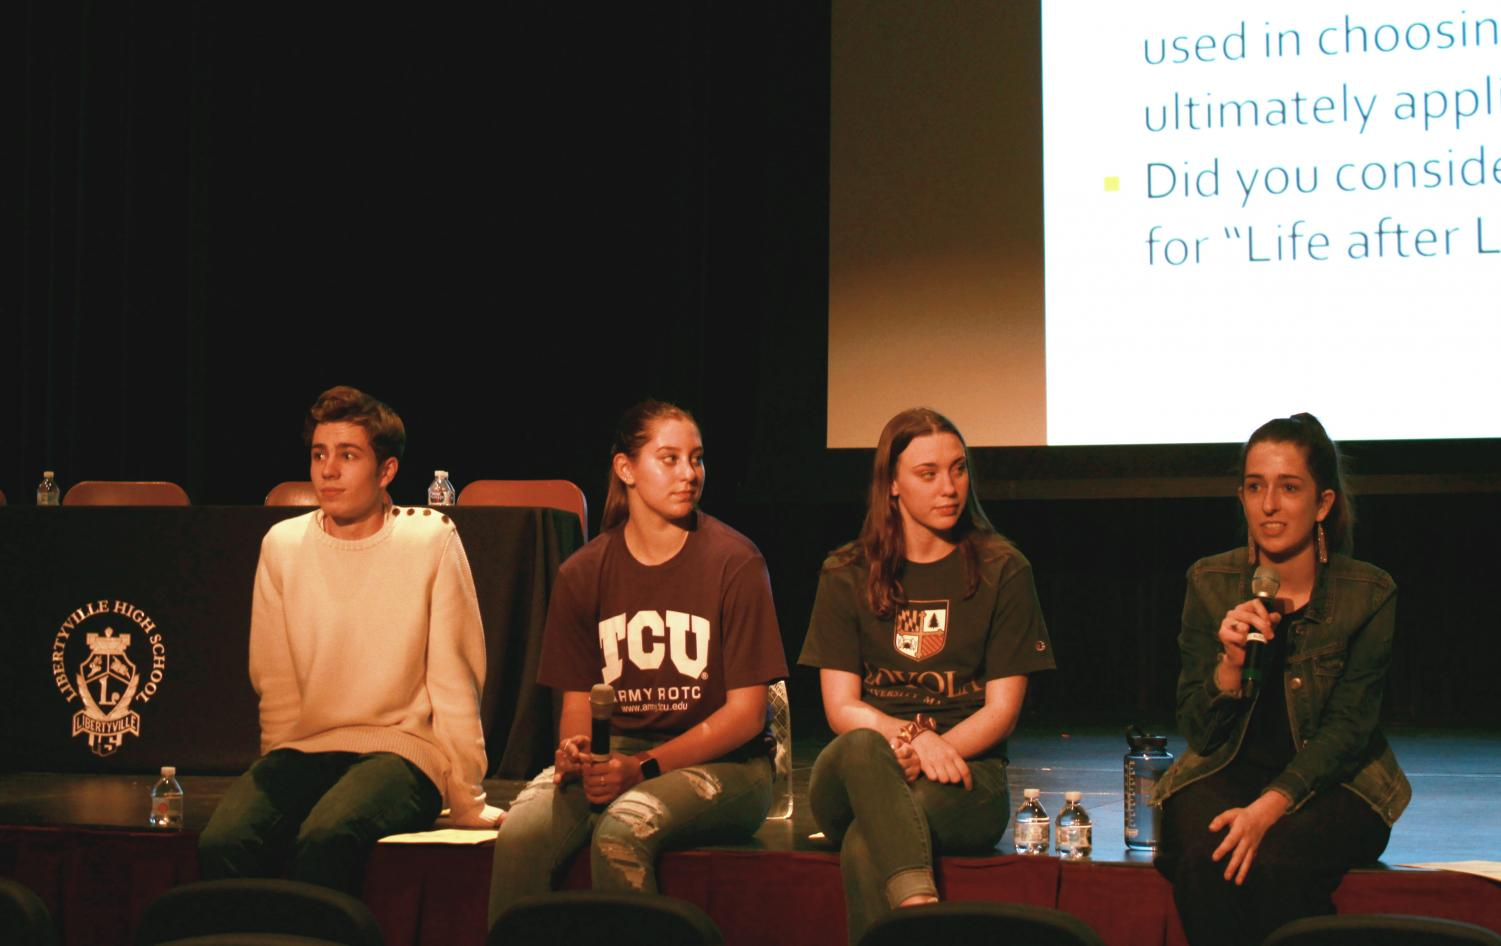 (left to right) Seniors Cooper Miller, Stephanie Gay (member of Drops of Ink), Brianna Reed and Tess Aumuller all came to share their recent experiences with college applications. The four discussed their personal application experiences and what their final decisions ended up being.